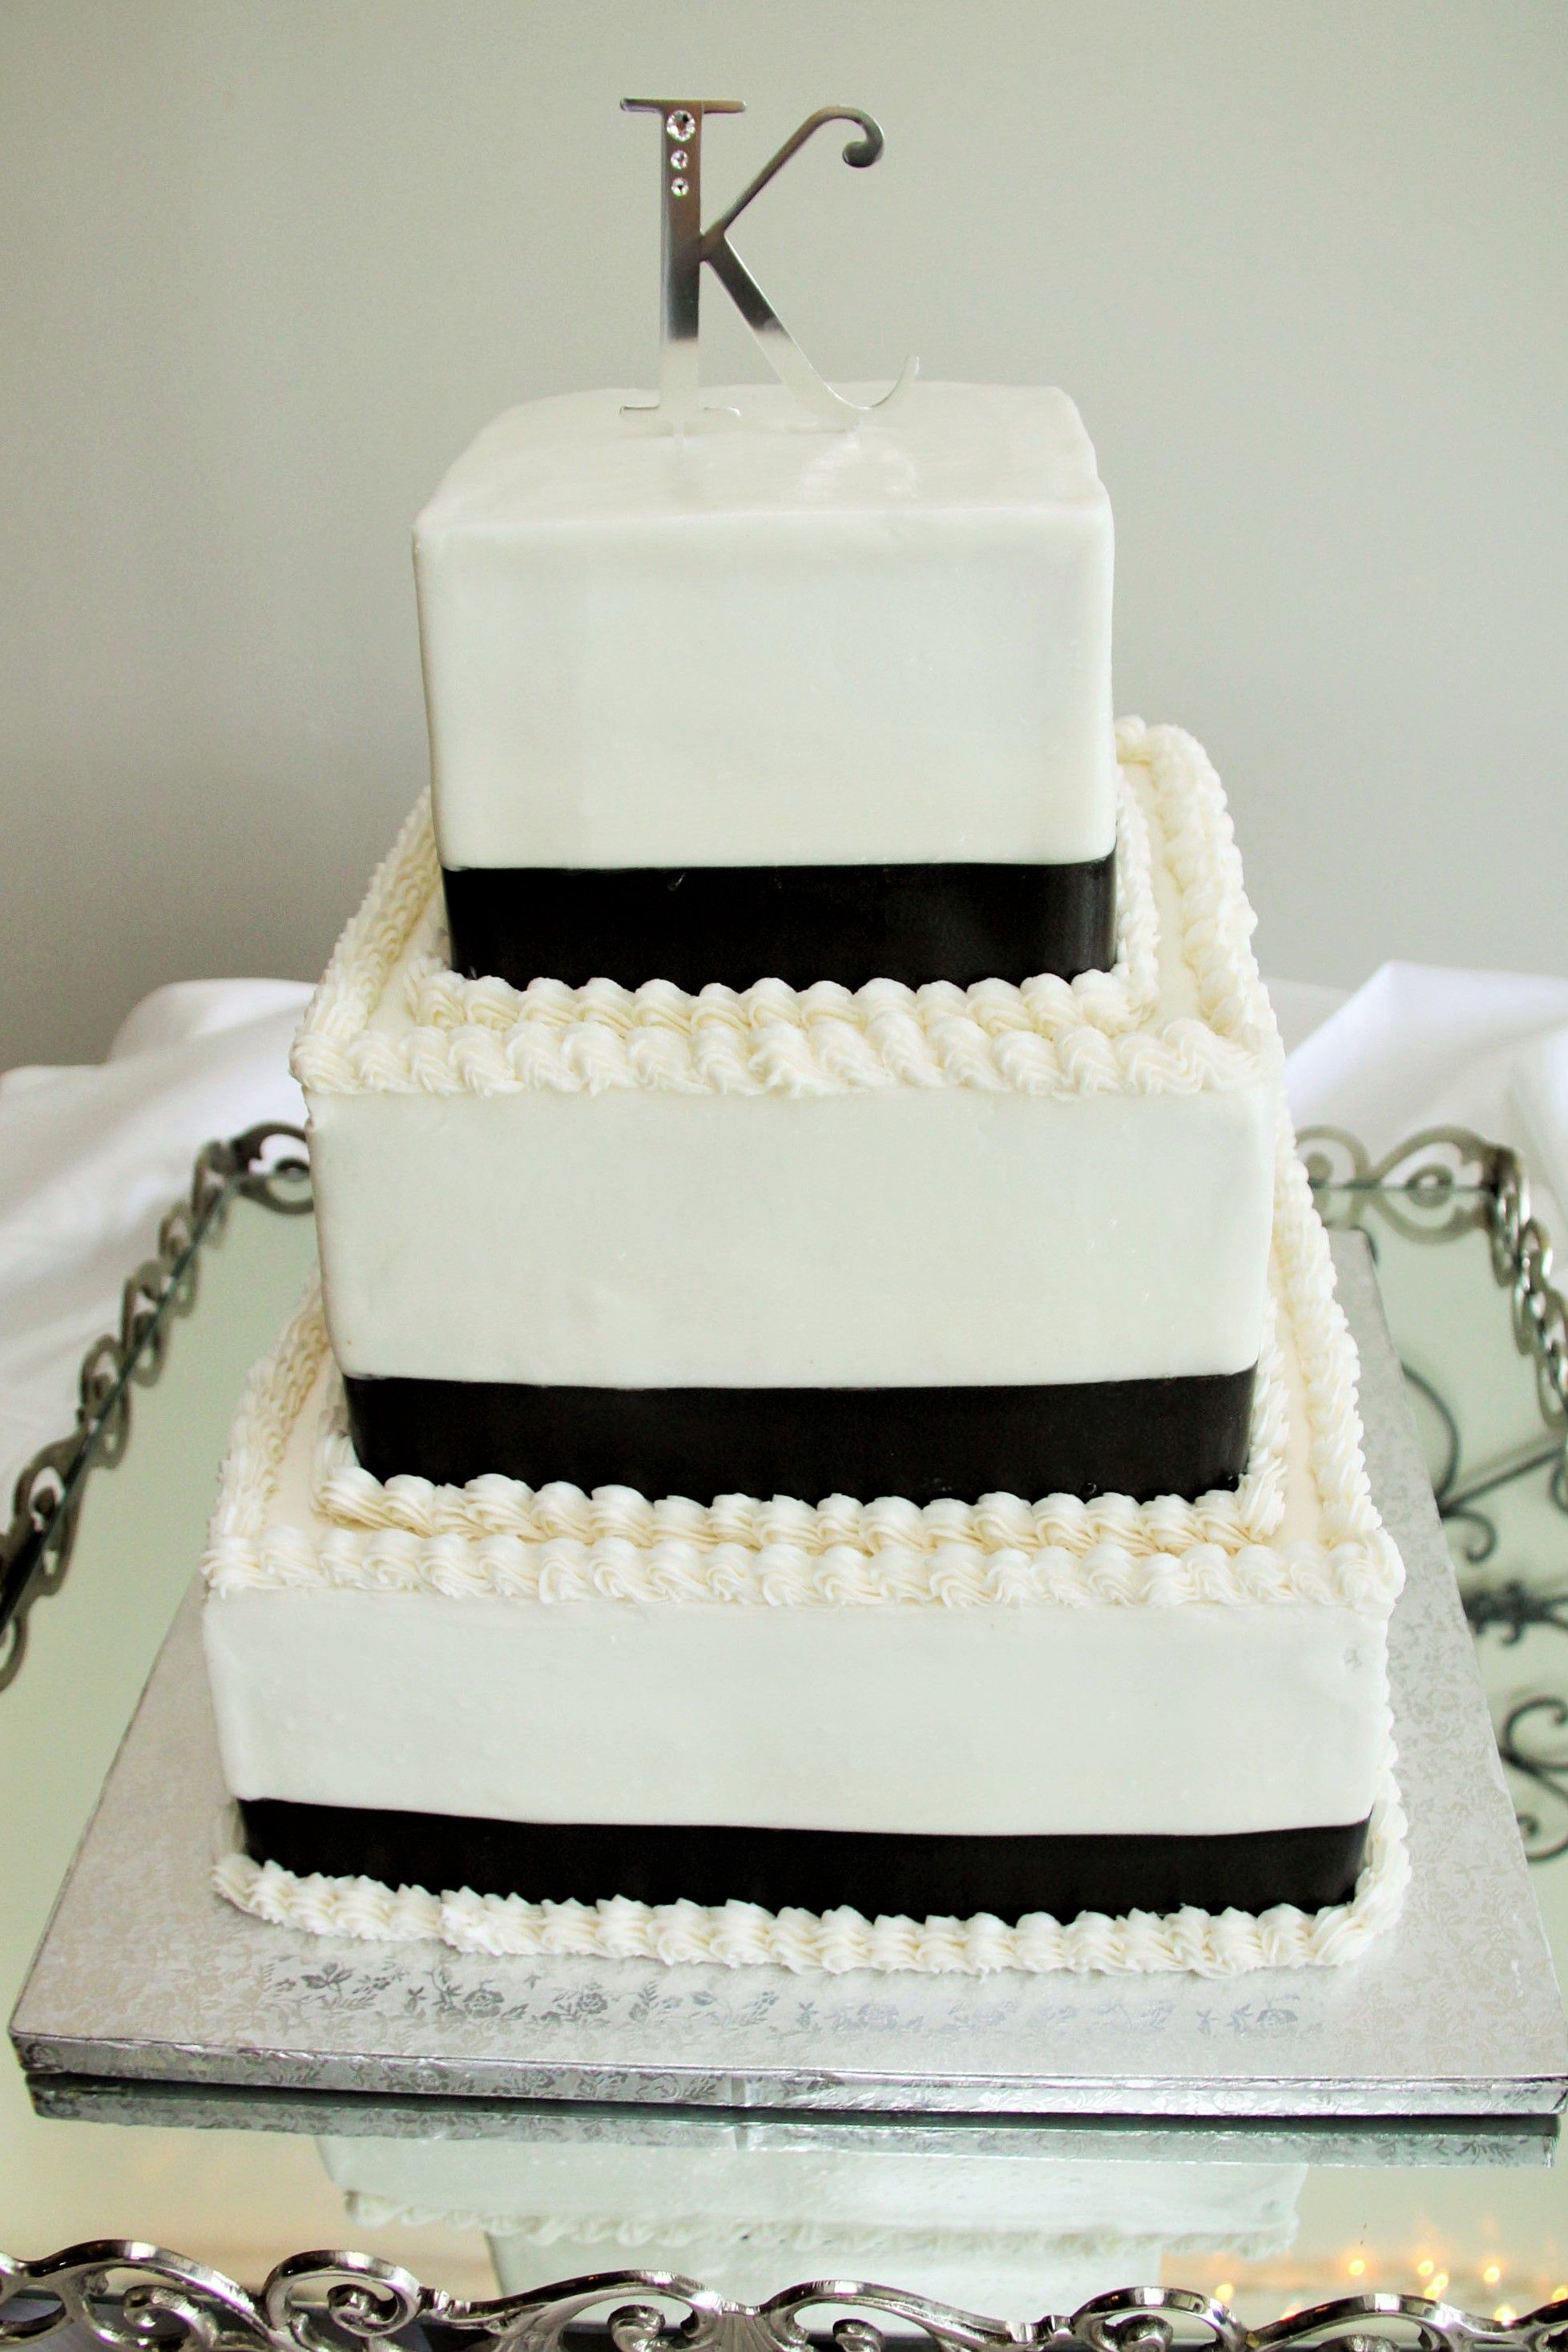 3 Tier Square Wedding Cake with Black Ribbon and Initial Cake